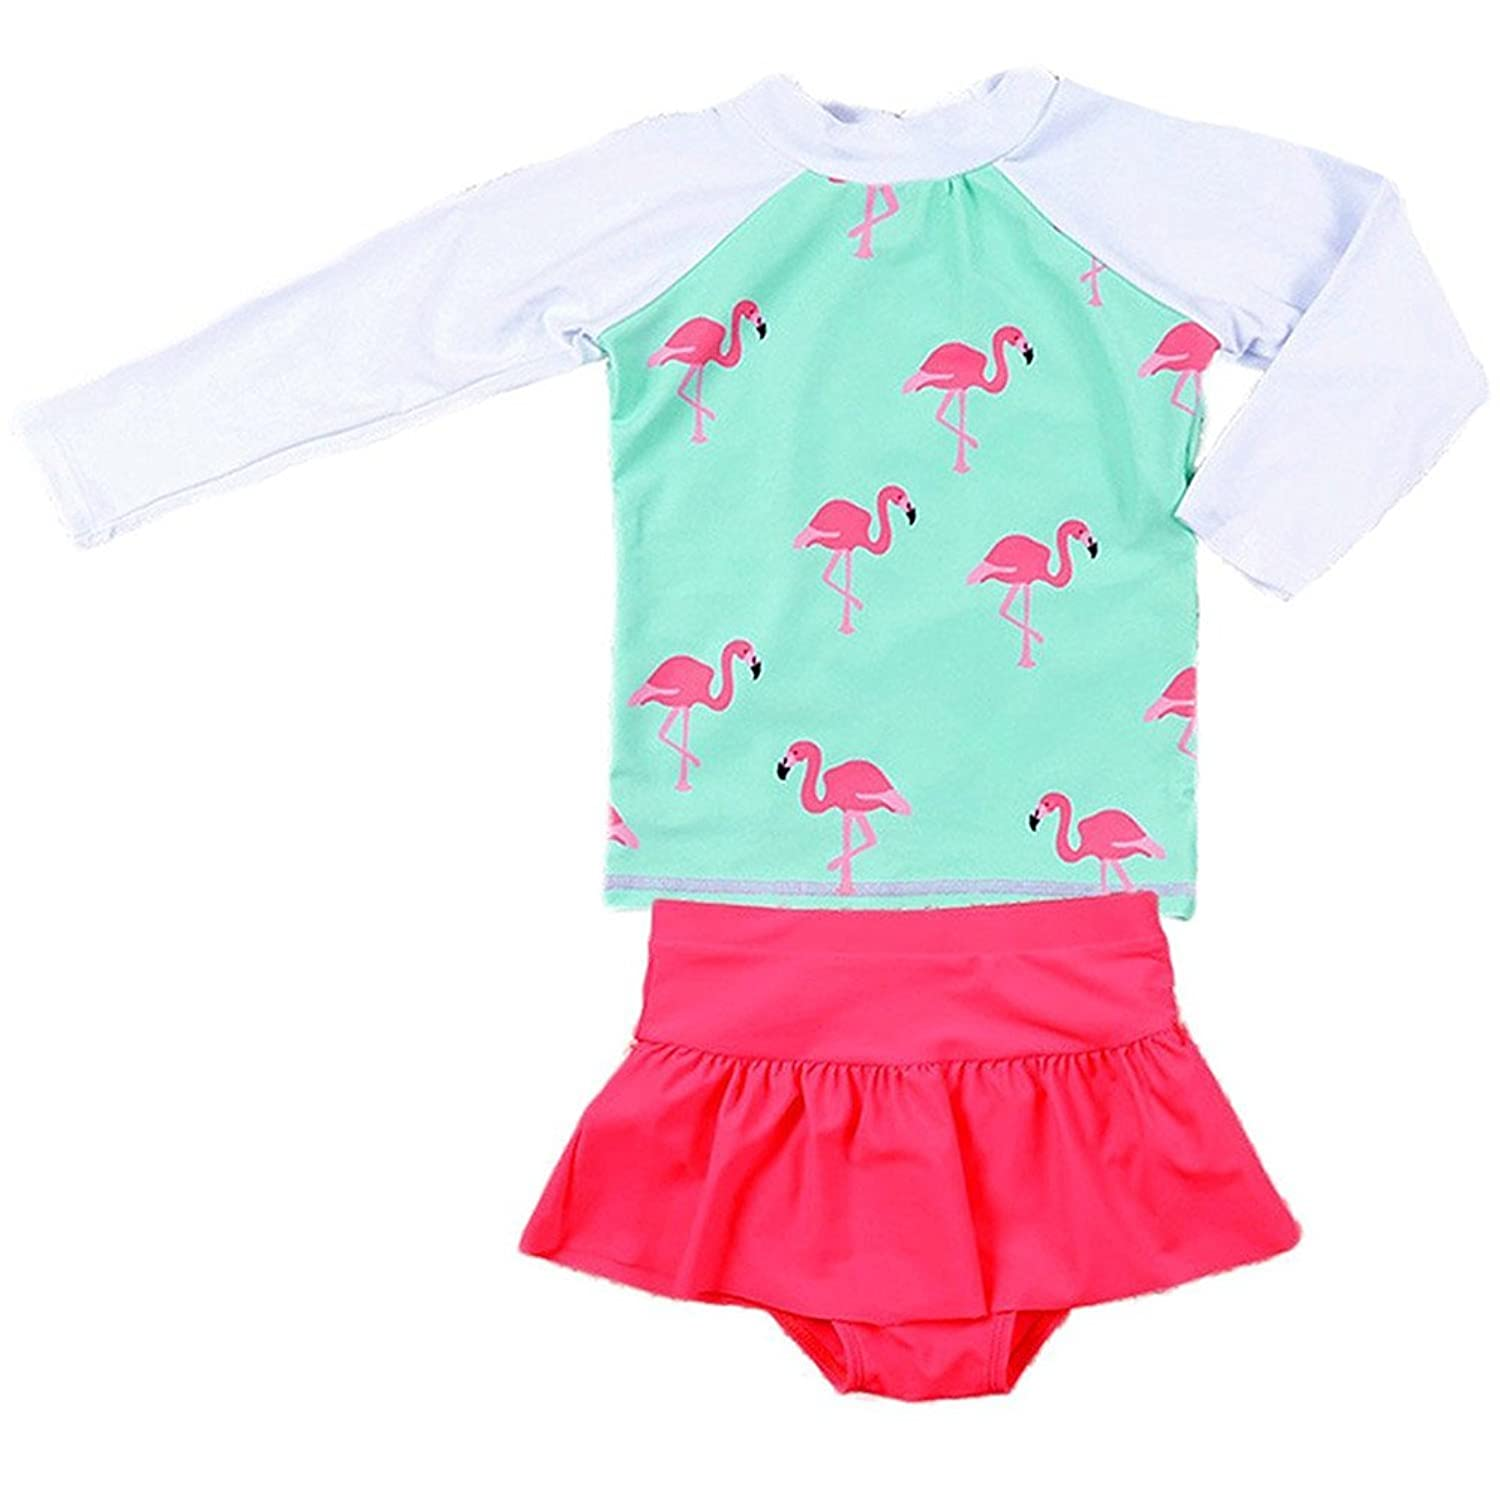 7b8d80f4d2d3f Style: long sleeve two pieces swimming suit design, effectively resist  ultraviolet ray, protect children's skin 8 SIZE for  2-3/3-4/4-5/5-6/6-7/7-8/8-9/9-10 ...